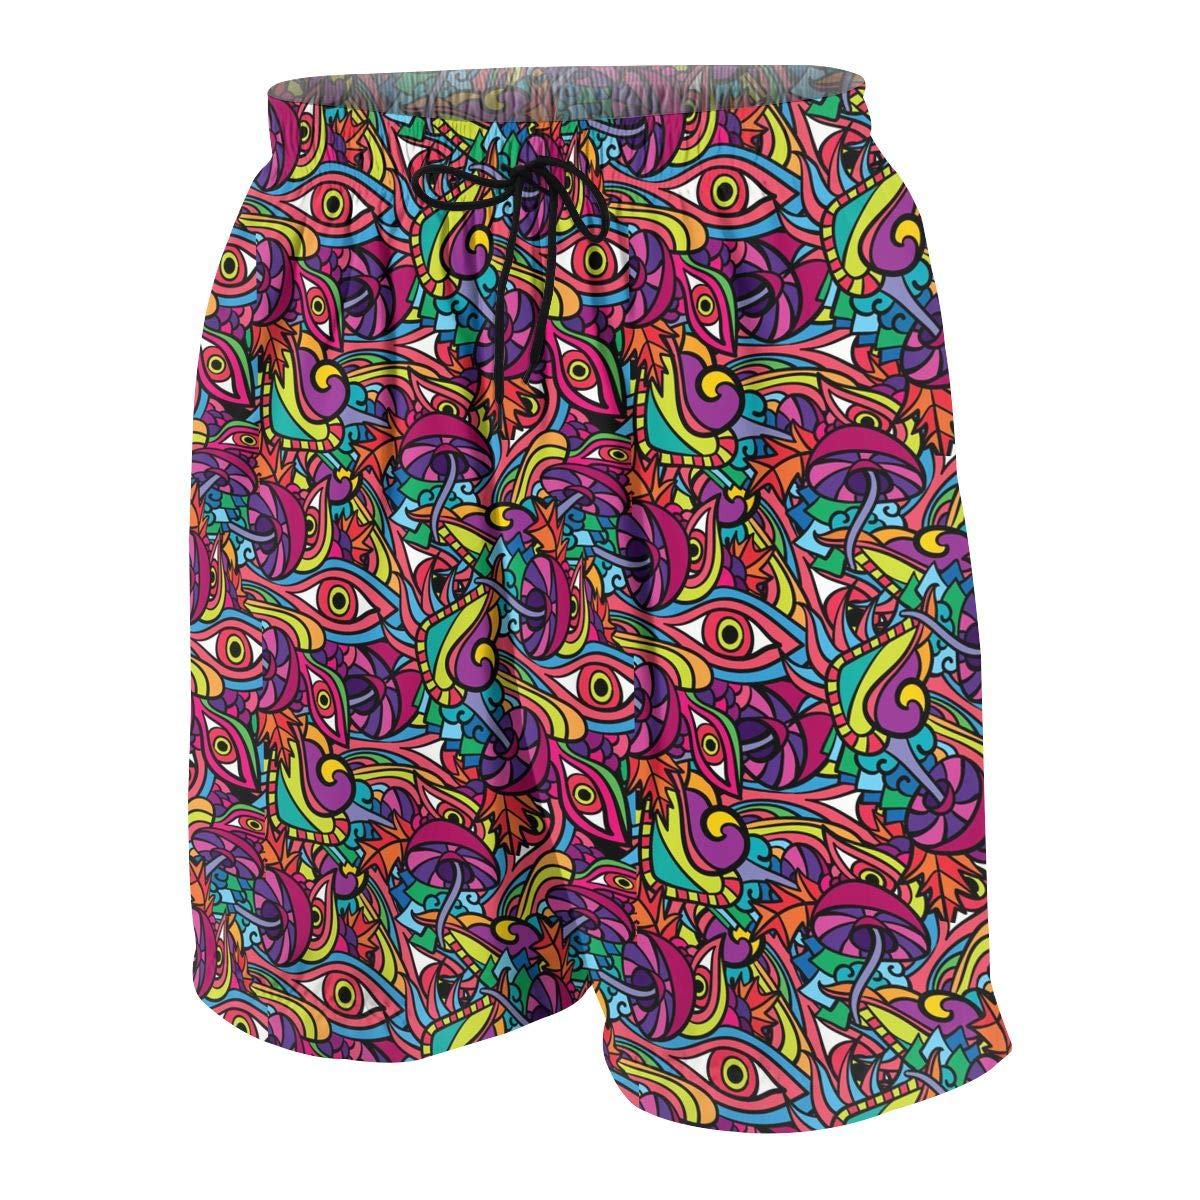 Polyester 60s Hippie Psychedelic Art Pattern Beachwear with Pockets Youth Quick Dry Swim Trunks